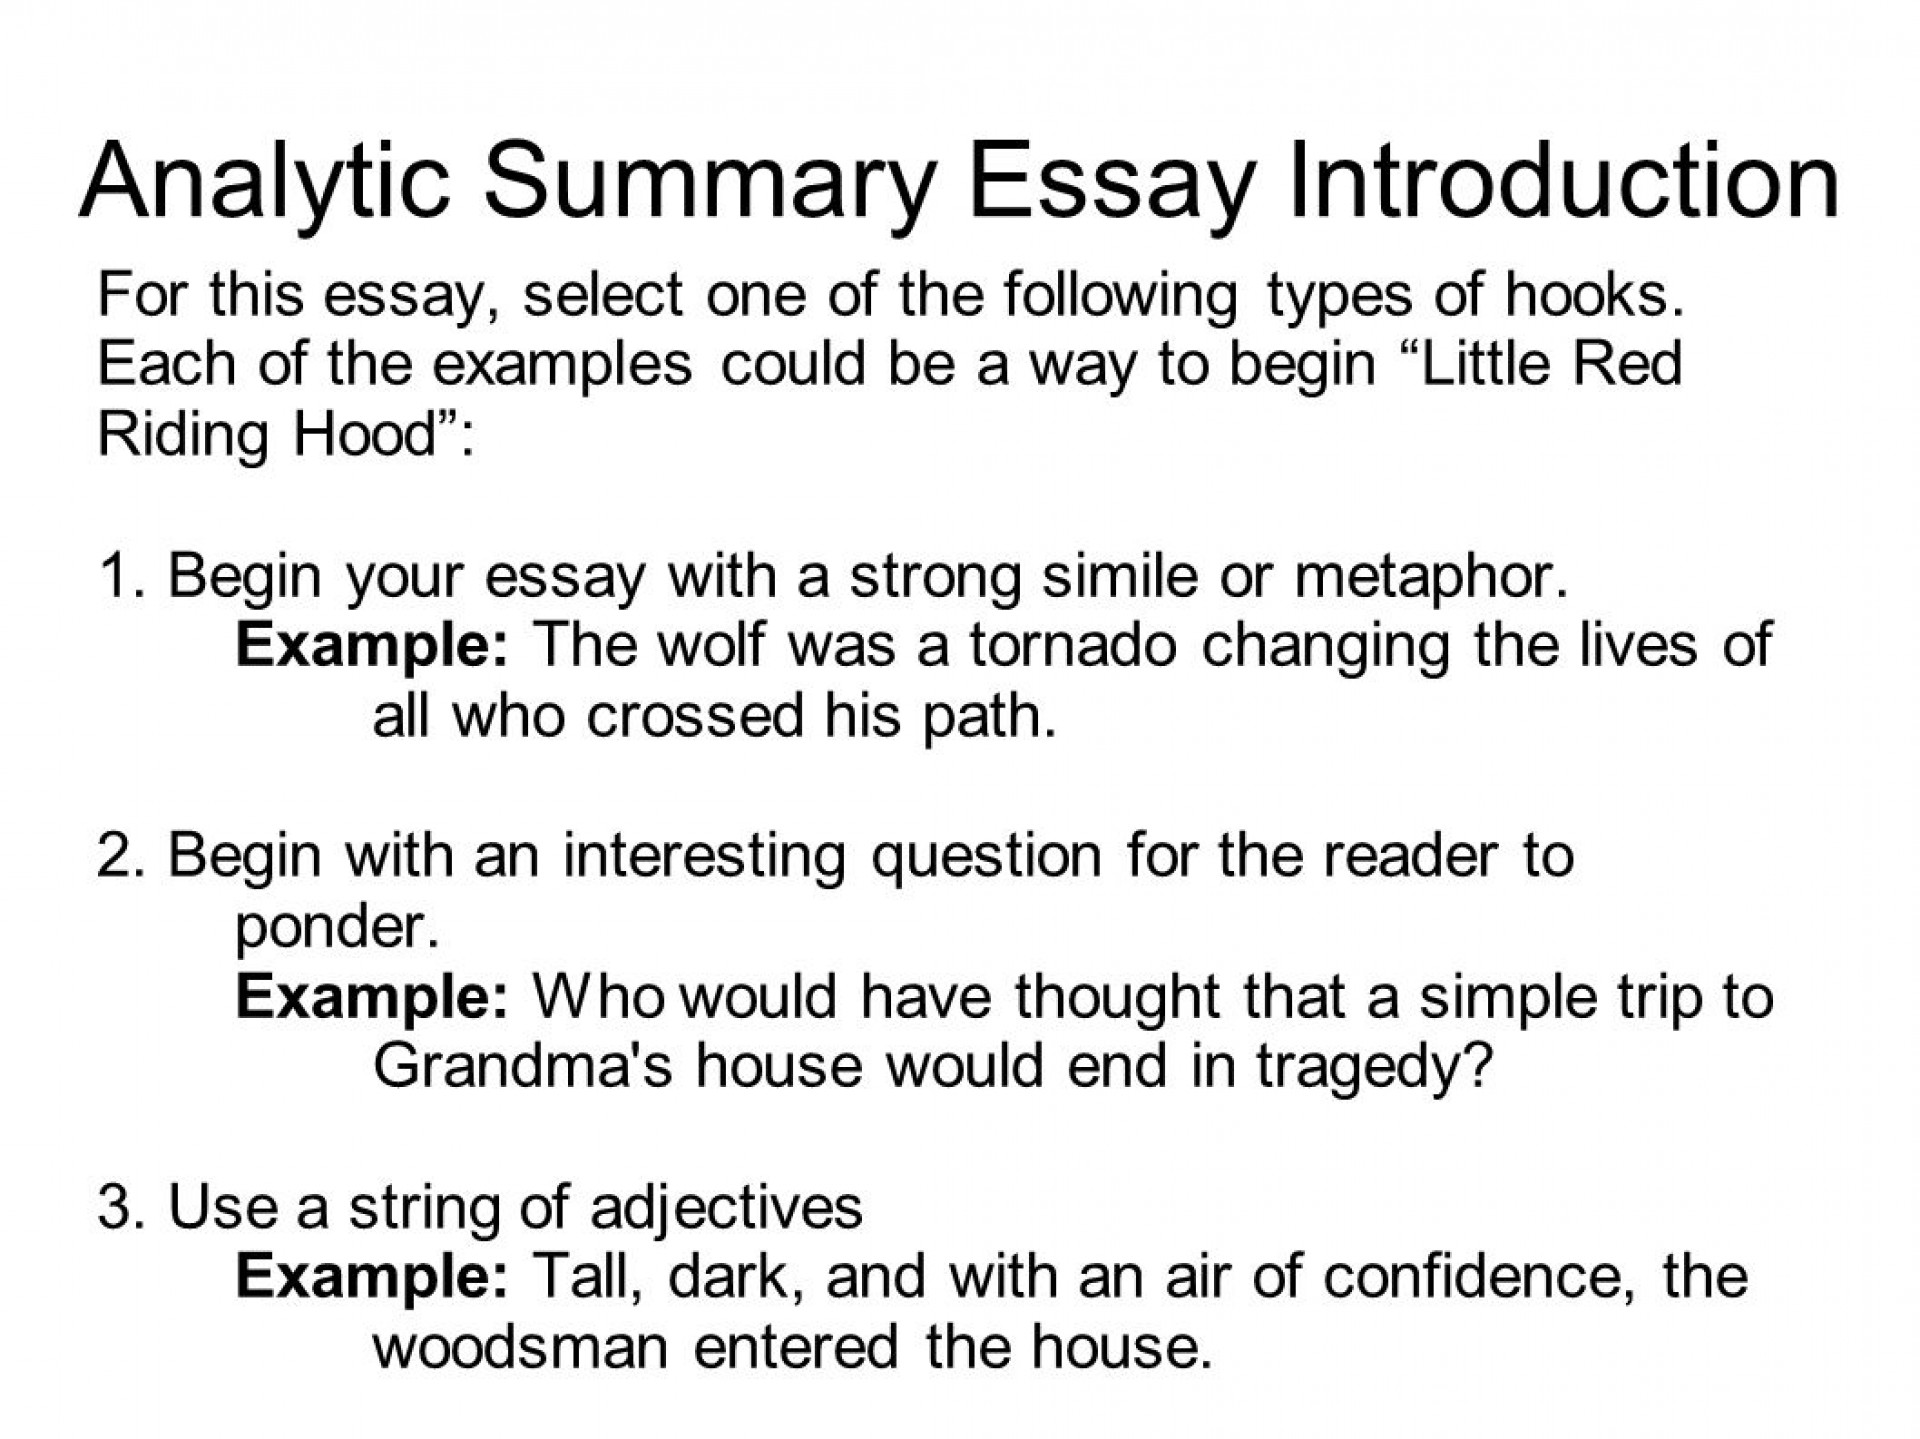 009 Examples Of Hooks For Essays Co Essay Example Sli Expository Comparison Writing Narrative Argumentative Types High School Hook Astounding A An About Death Penalty Family 1920